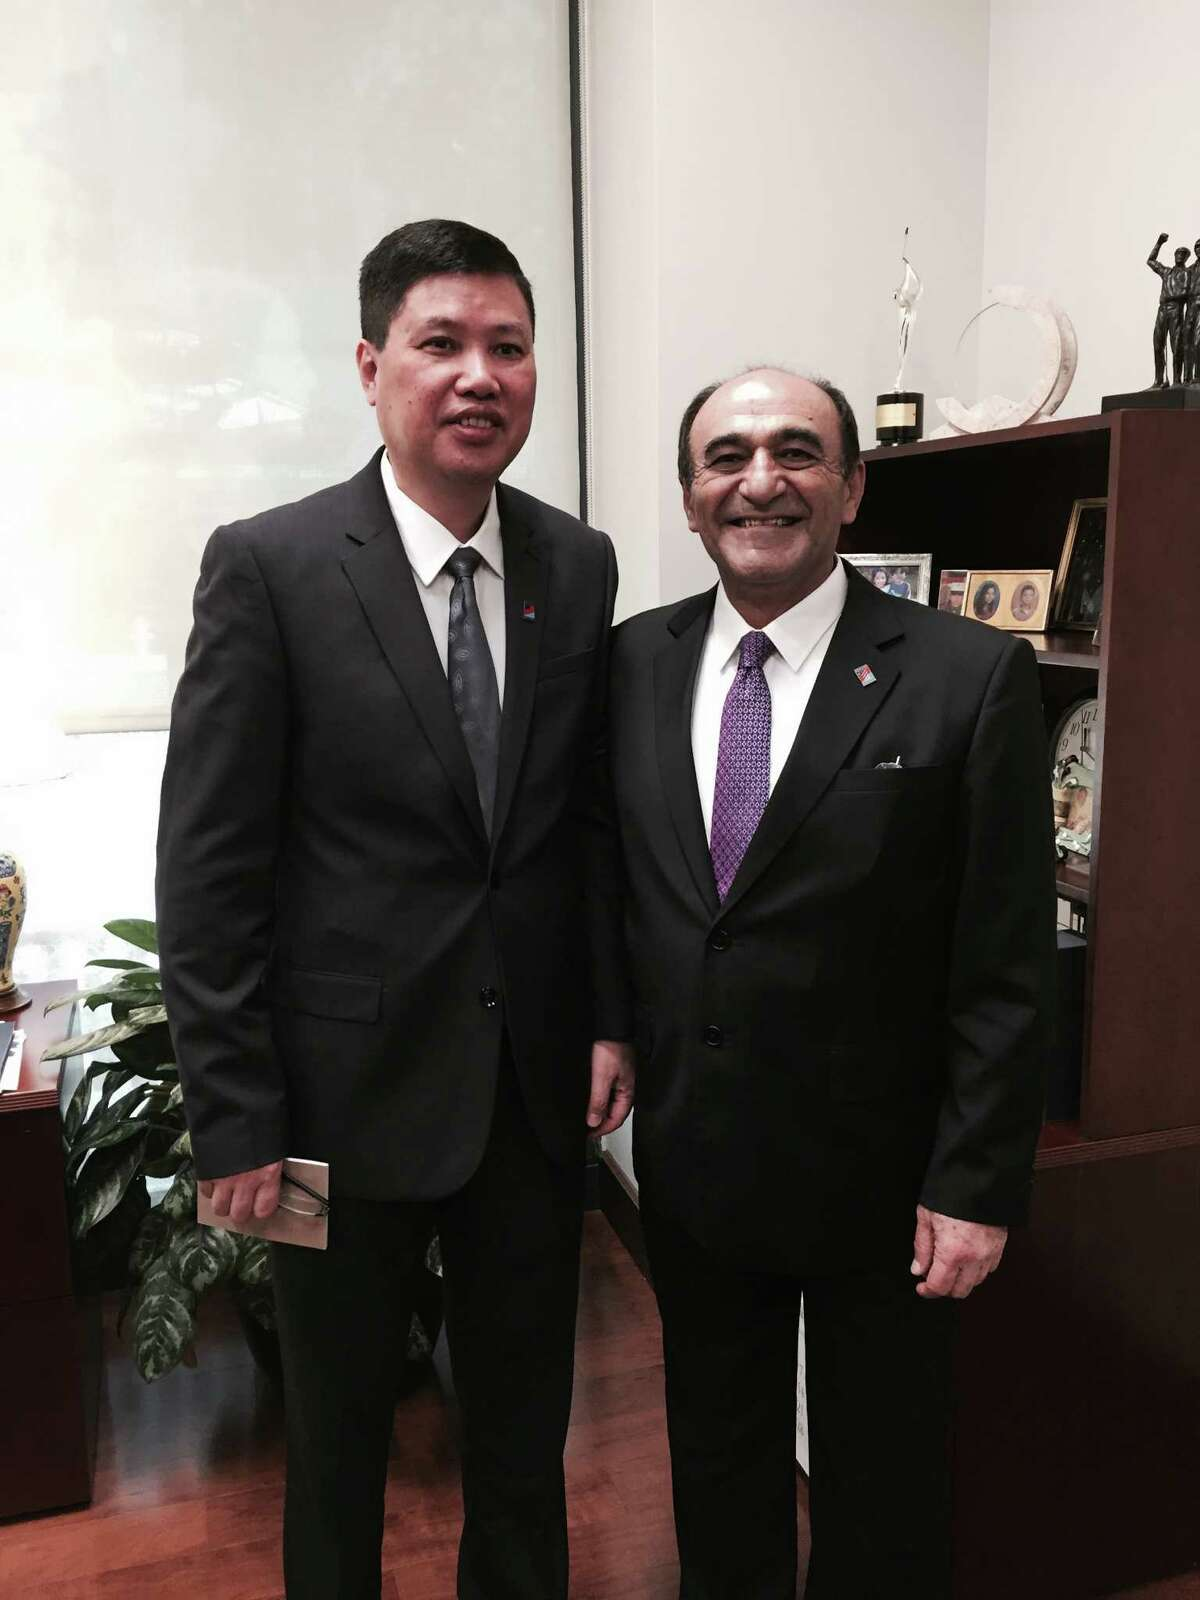 Harley Seyedin (right), president of the American Chamber of Commerce in South China, organized the delegation visit to San Antonio. He recruited executives of 10 Chinese companies, including He Chaoping, chairman of Guangdong Guangxin Trade Development Co., for the buying and investment mission to San Antonio this week.